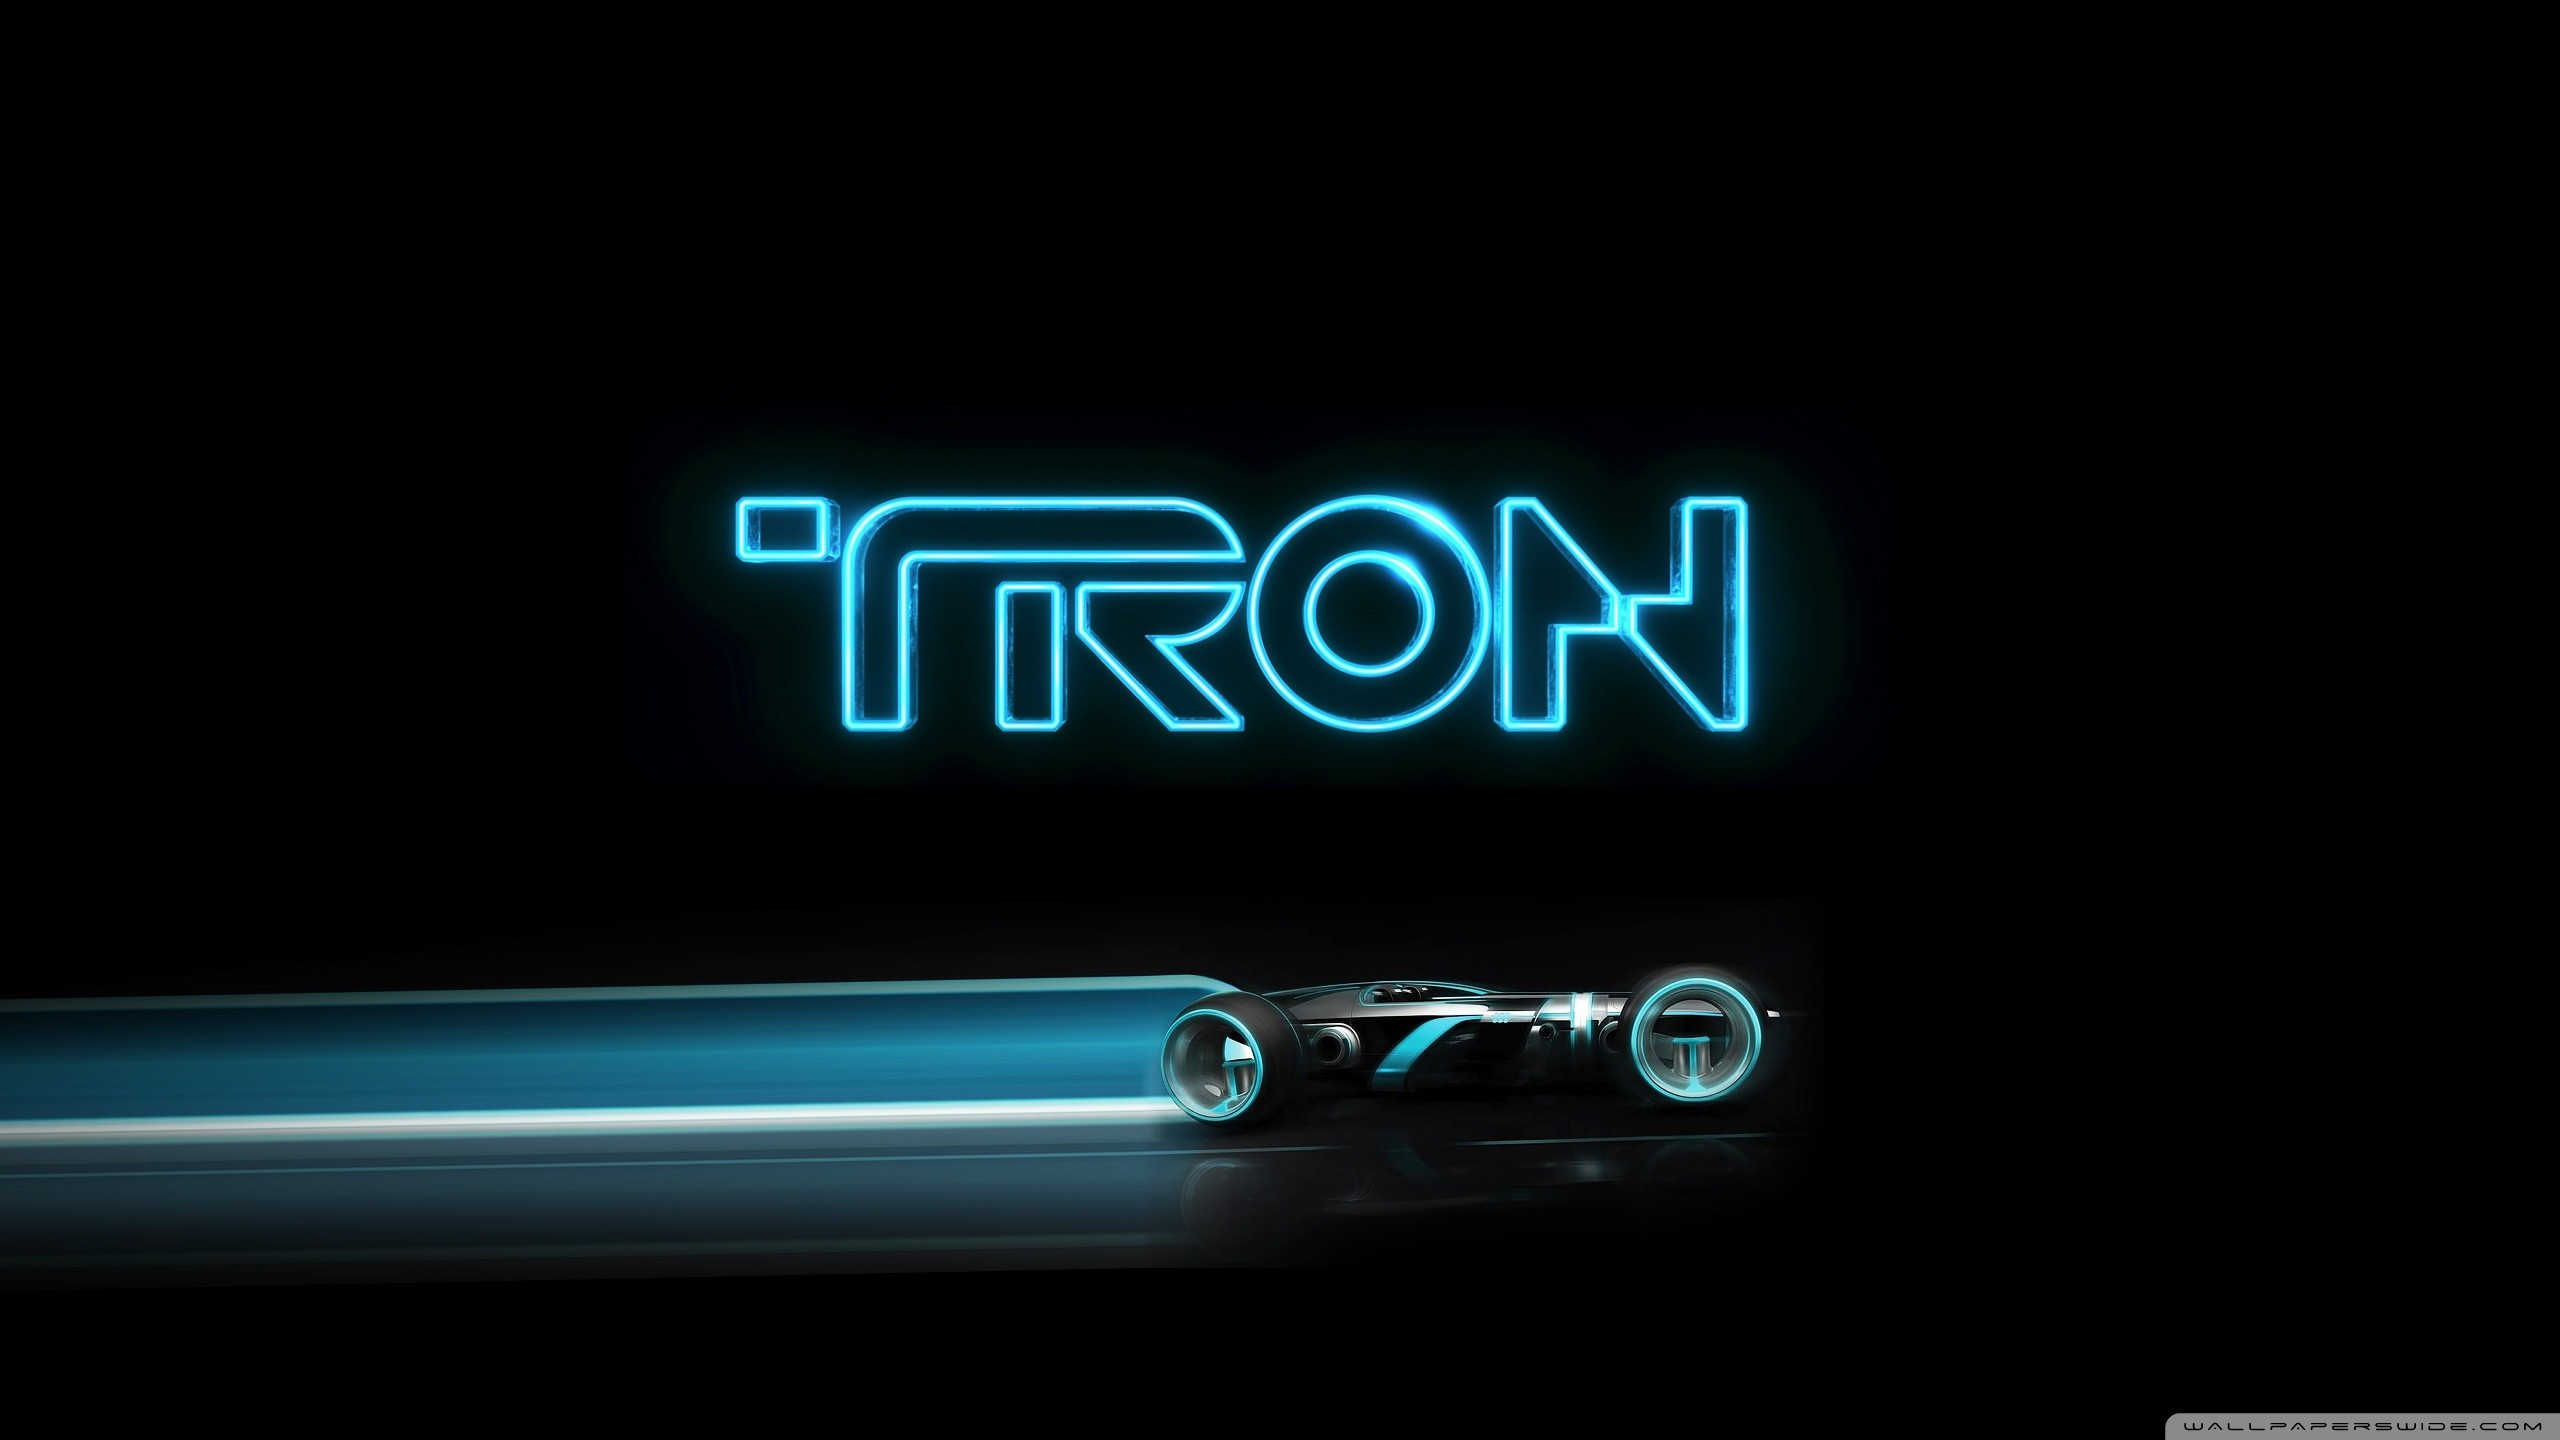 2560x1440 Tron Wallpaper July 2016 Posted by Wallpapers HDa